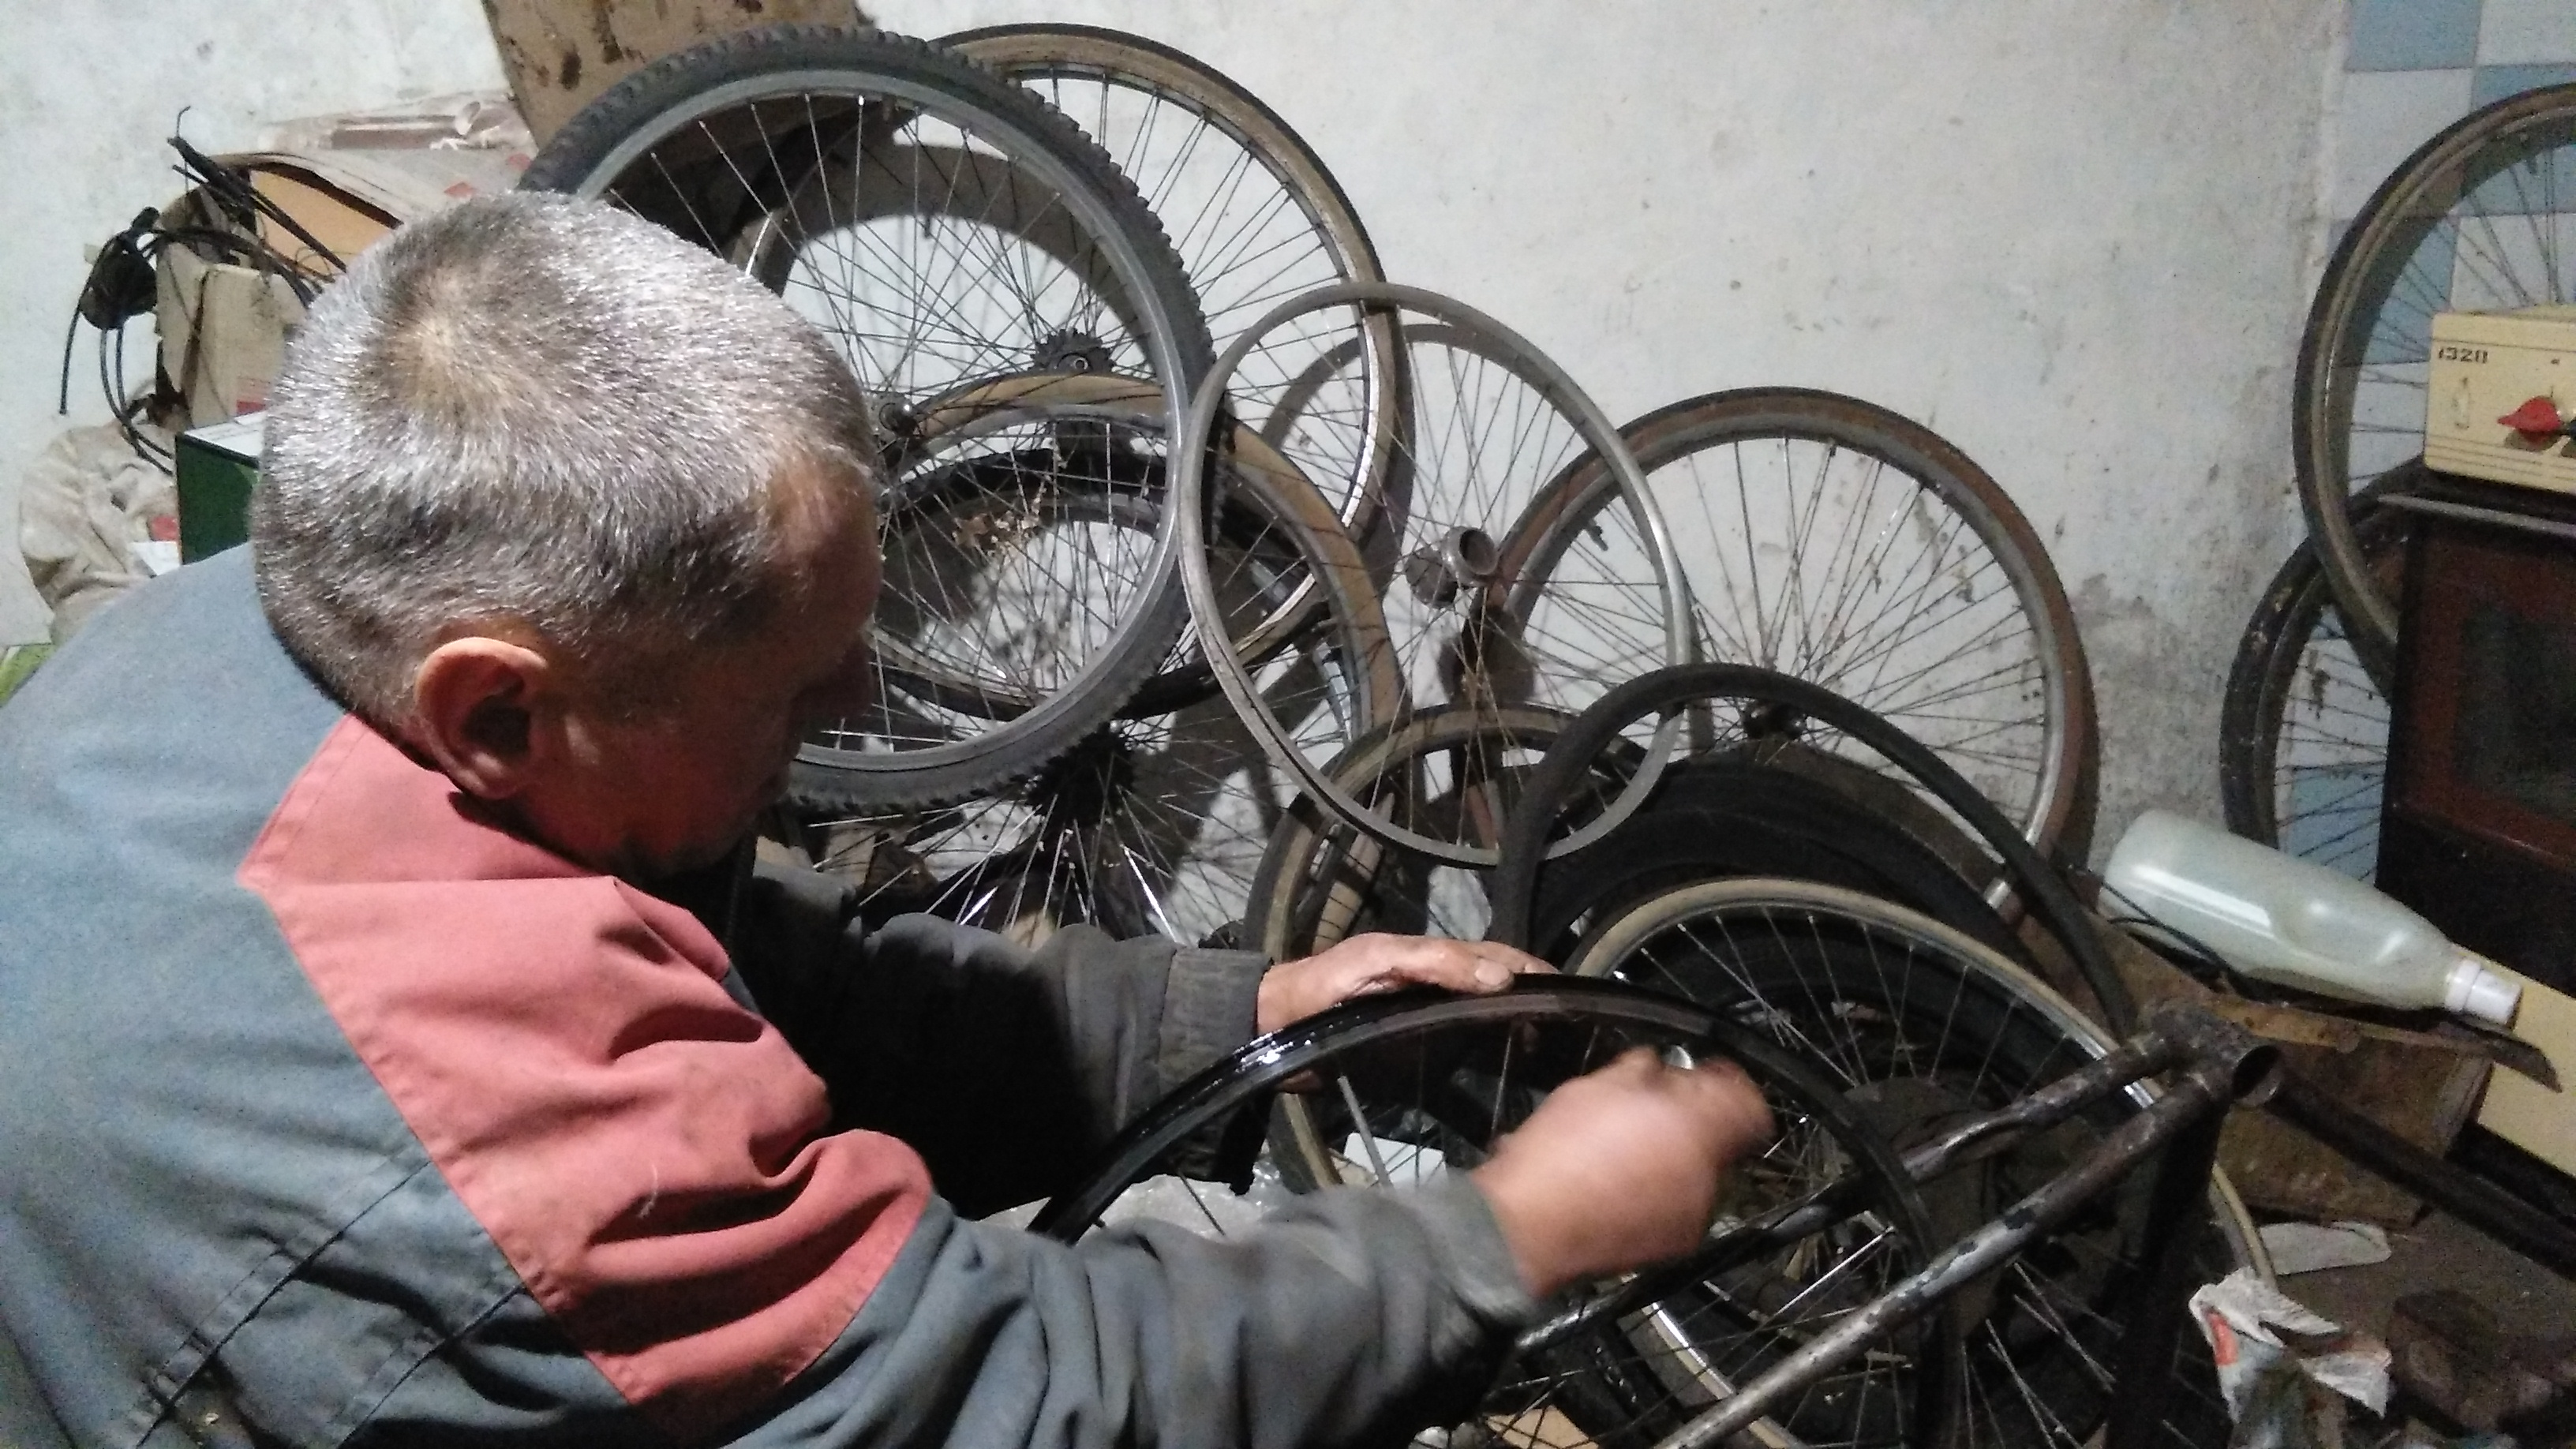 Vladimir fixing my wheel in his workshop